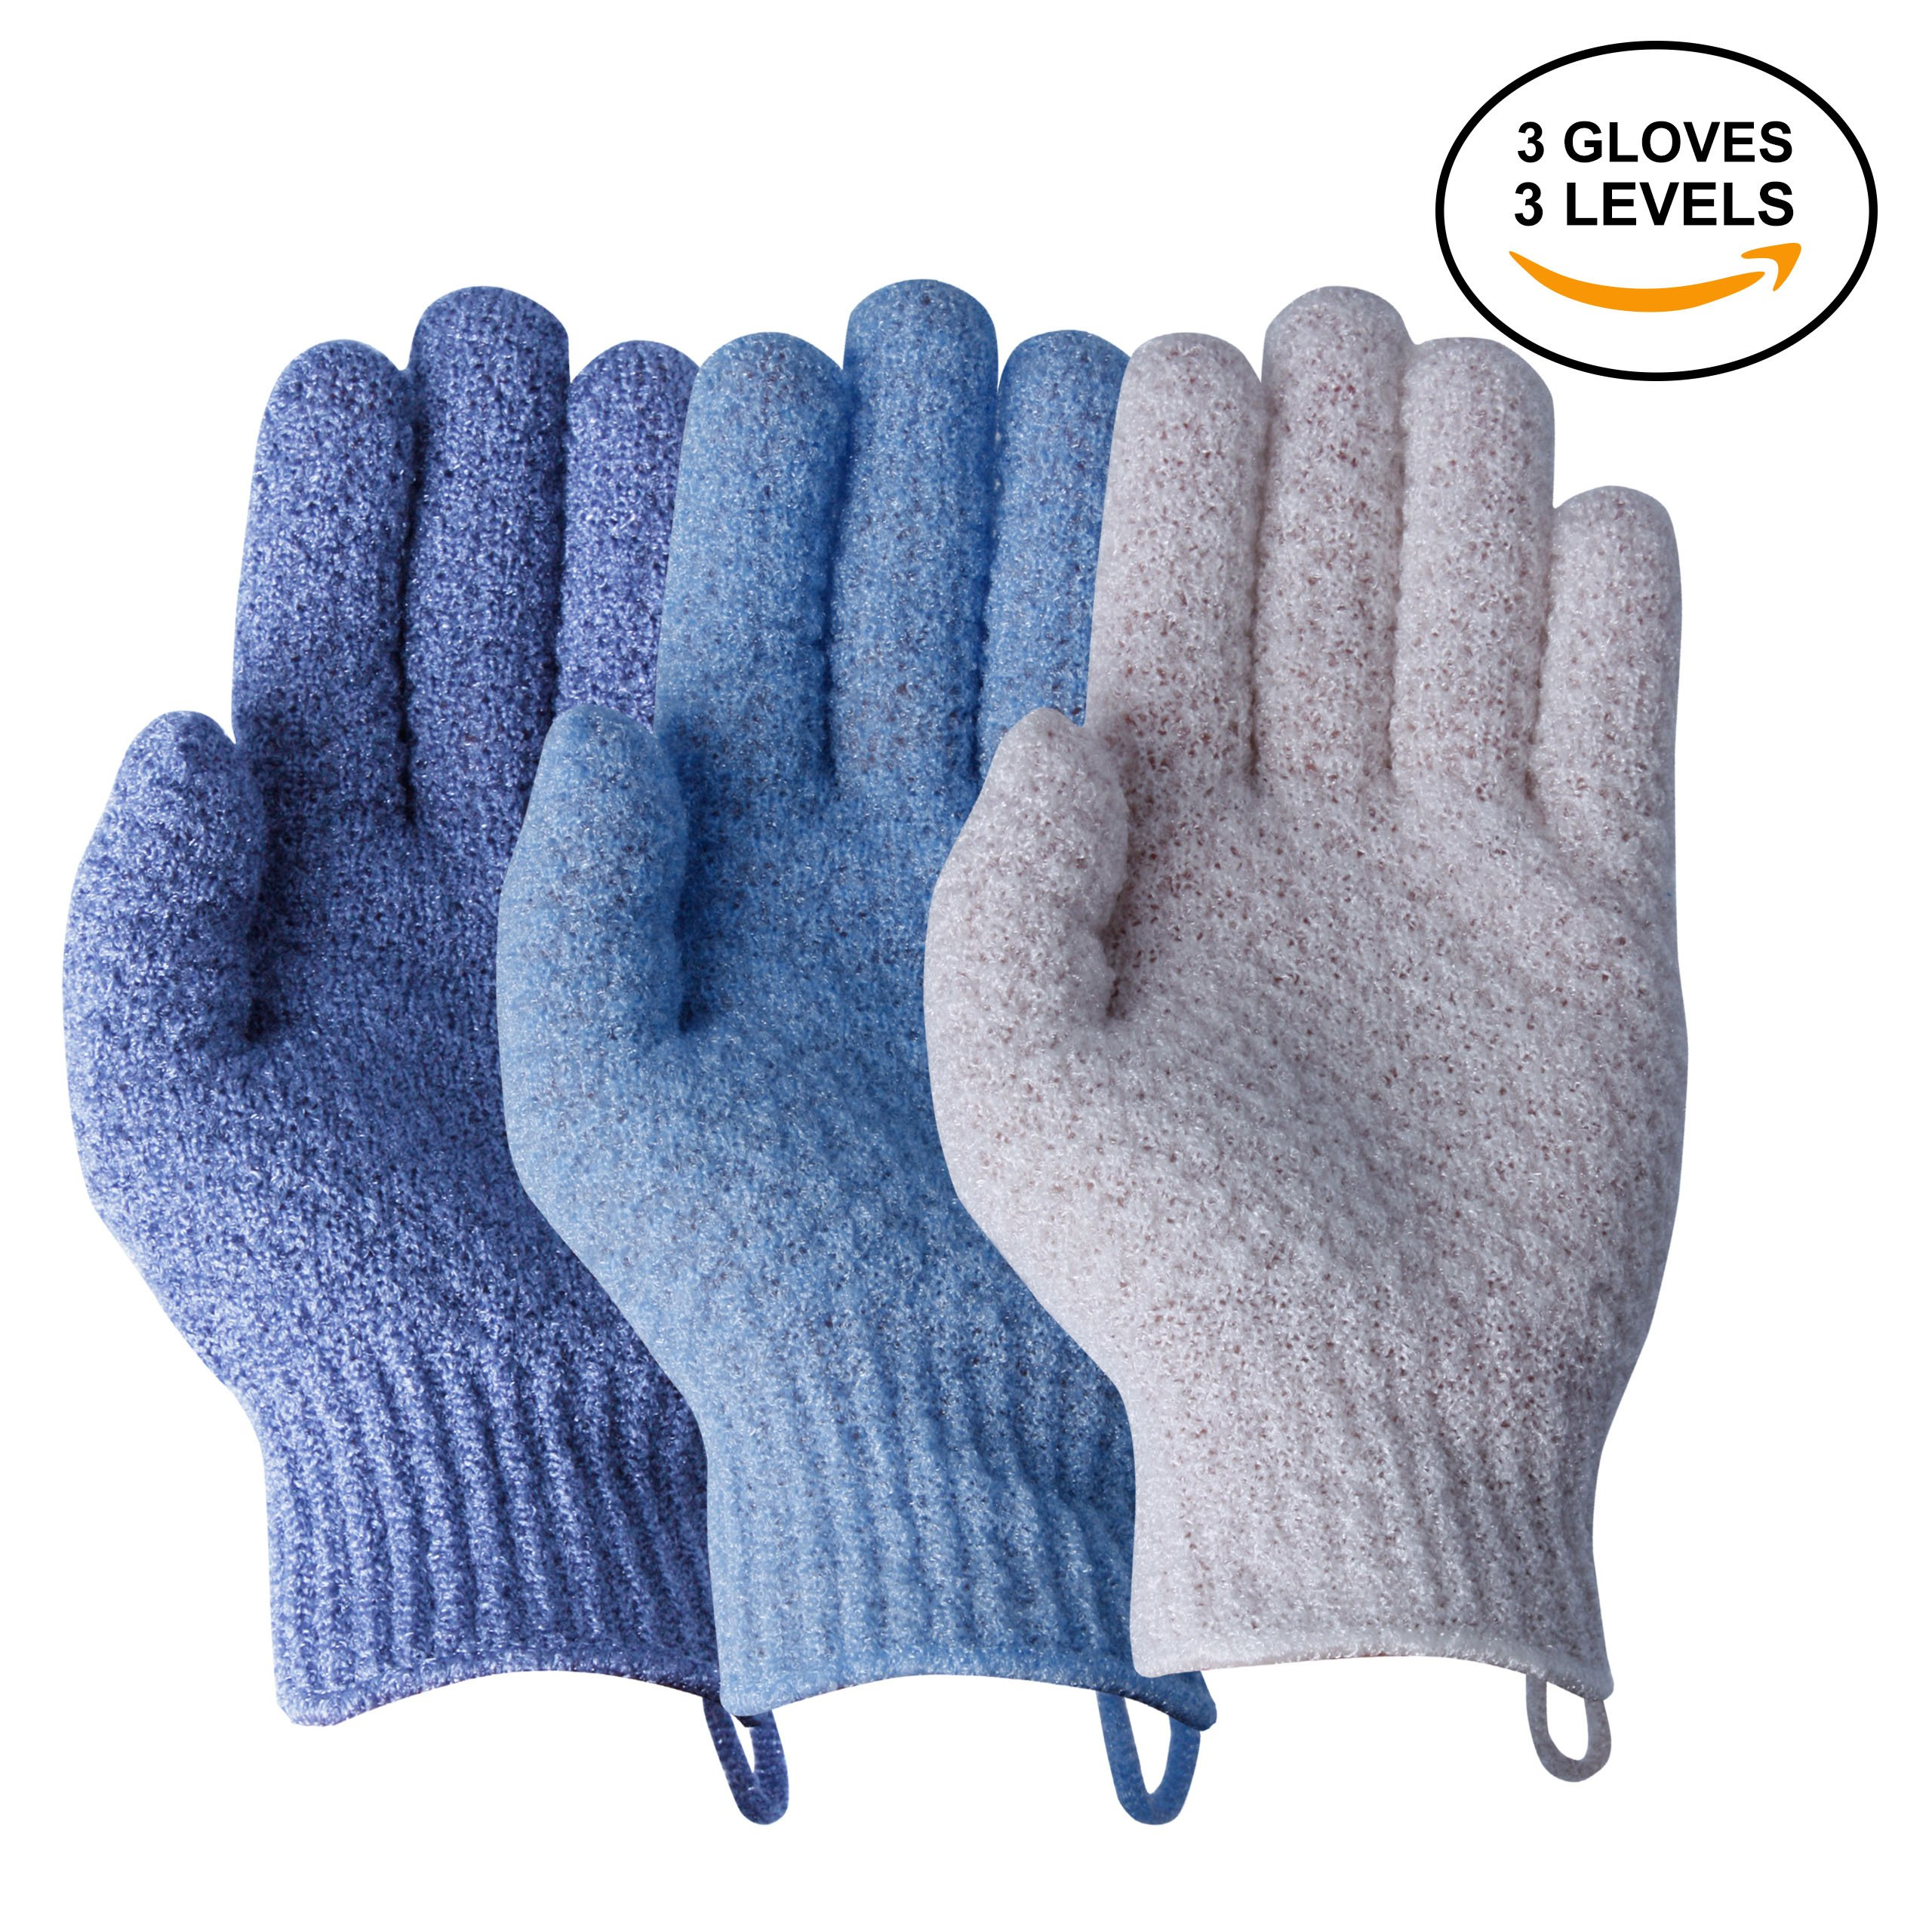 3 Distinct Levels, 3 Pack EvridWear Exfoliating Dual Texture Bath Gloves for Shower, Spa, Massage and Body Scrubs, Dead Skin Cell Remover, Gloves with hanging loop, 3 Colors 3 Exfoliating levels